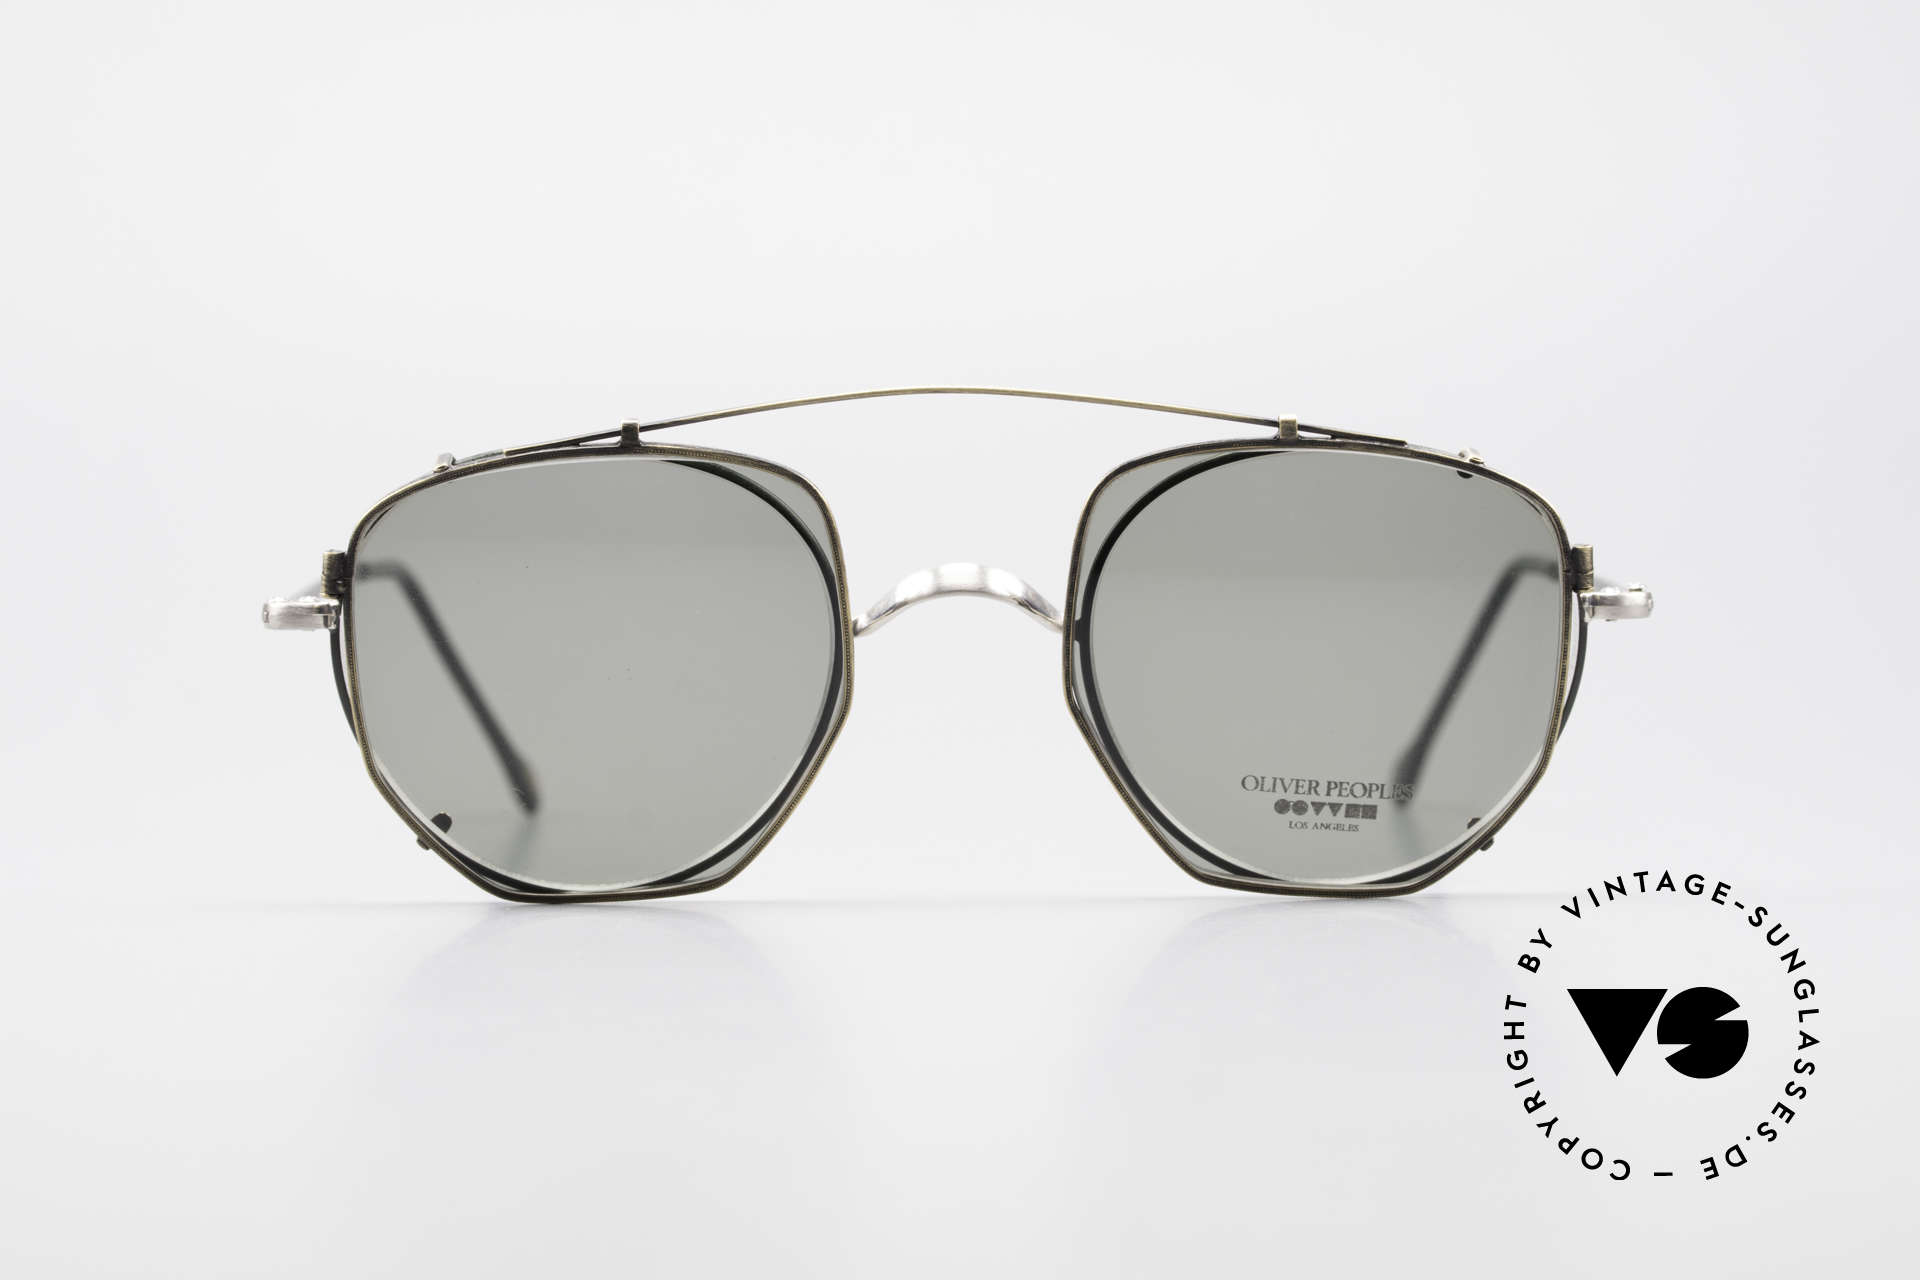 Oliver Peoples OP80BC Round Frame Square Clip On, American LUXURY eyewear brand, established in 1986, Made for Men and Women